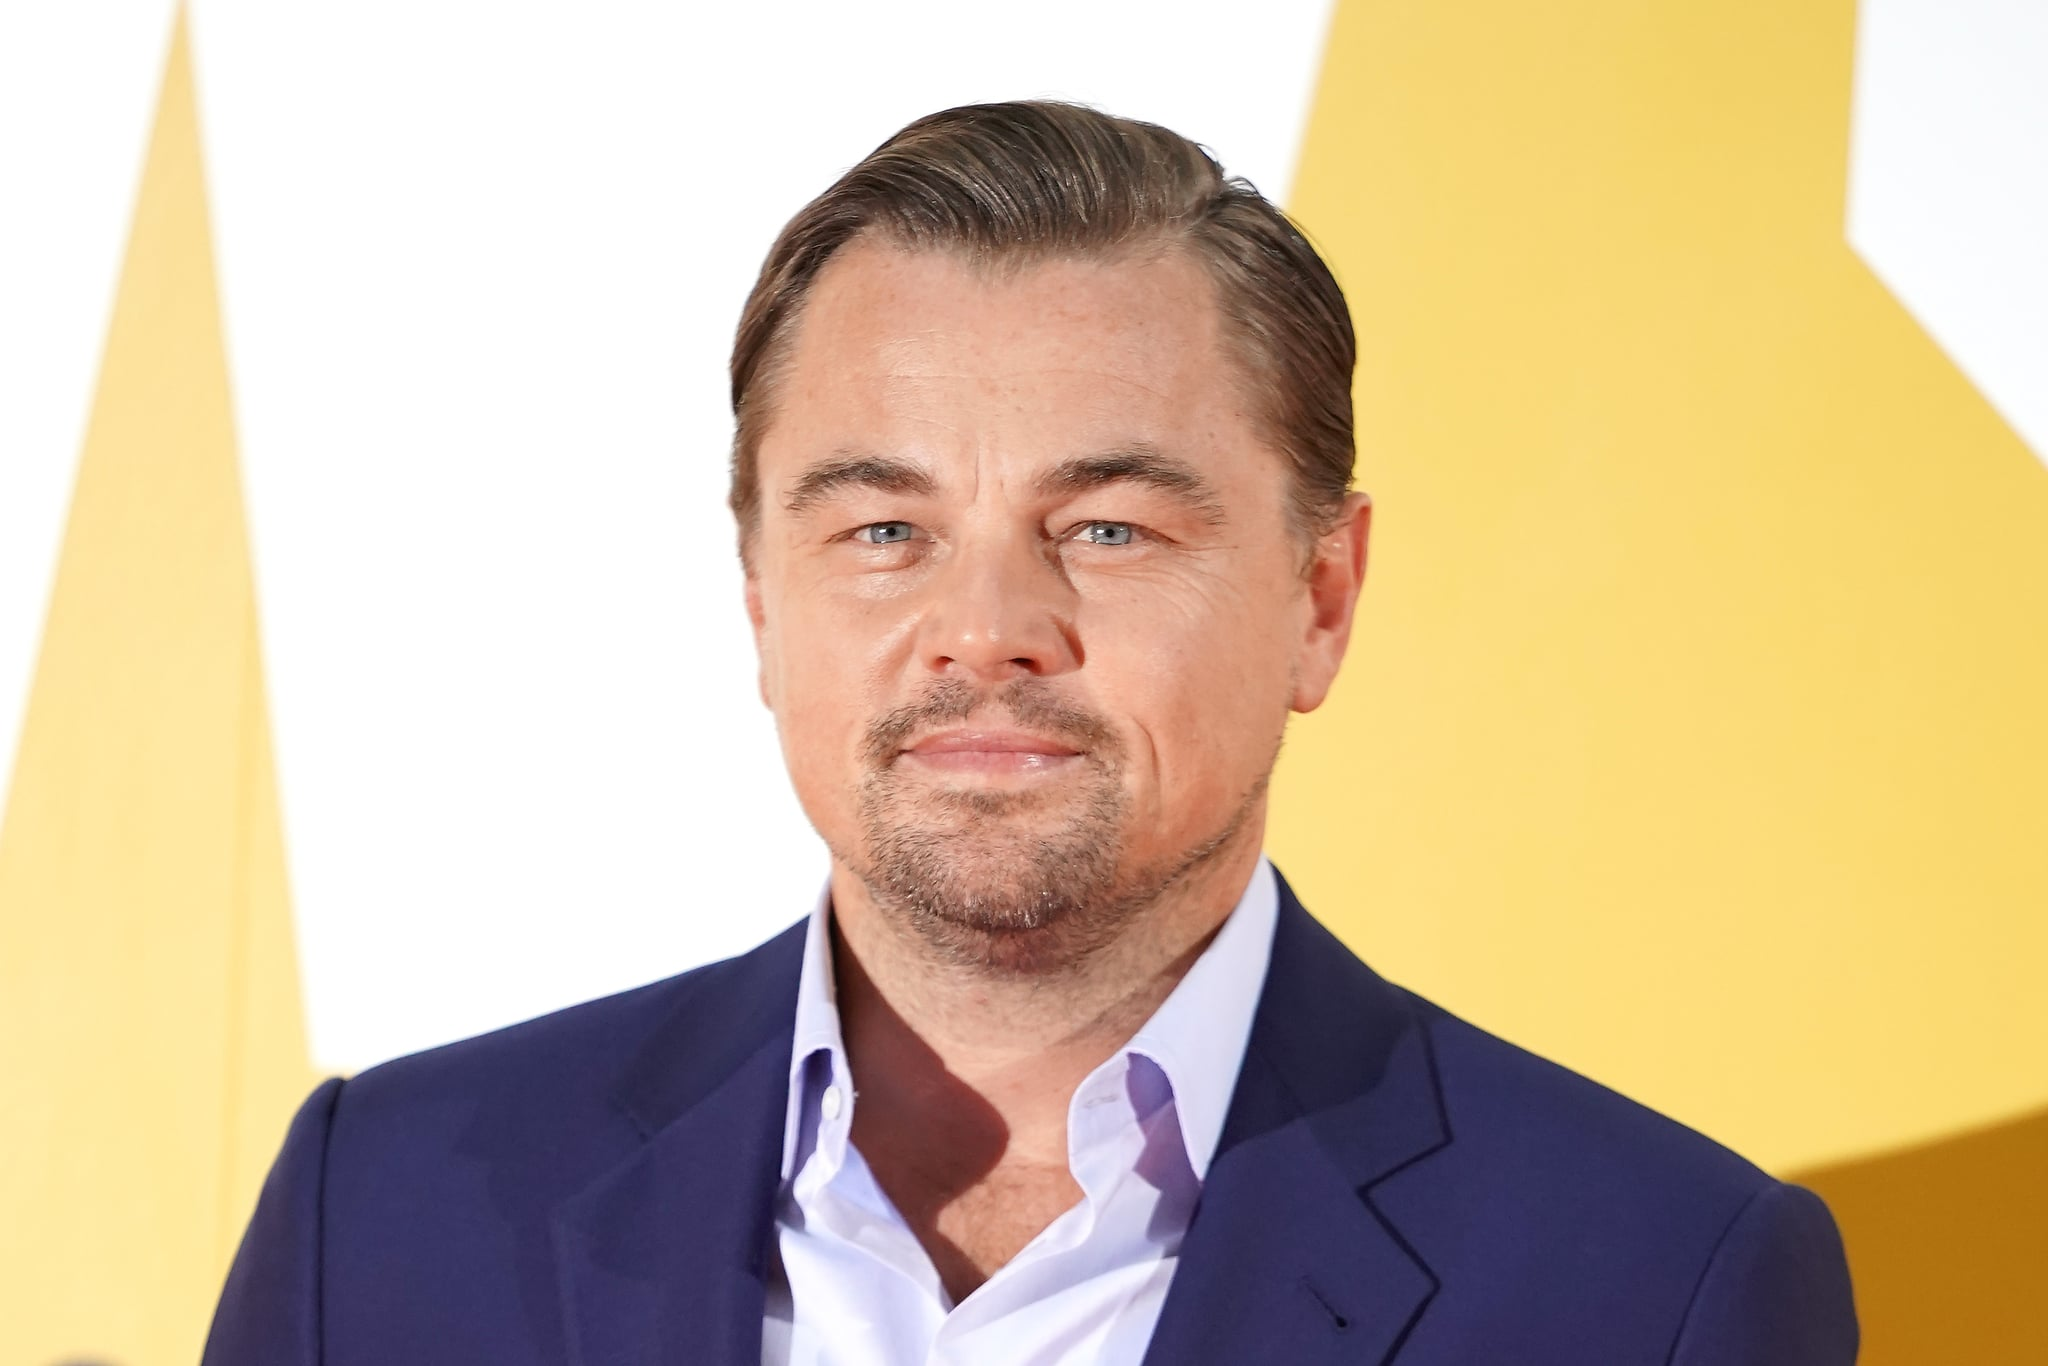 TOKYO, JAPAN - AUGUST 26: Leonardo DiCaprio attends the Japan premiere of 'Once Upon A Time In Hollywood' on August 26, 2019 in Tokyo, Japan. (Photo by Christopher Jue/Getty Images)